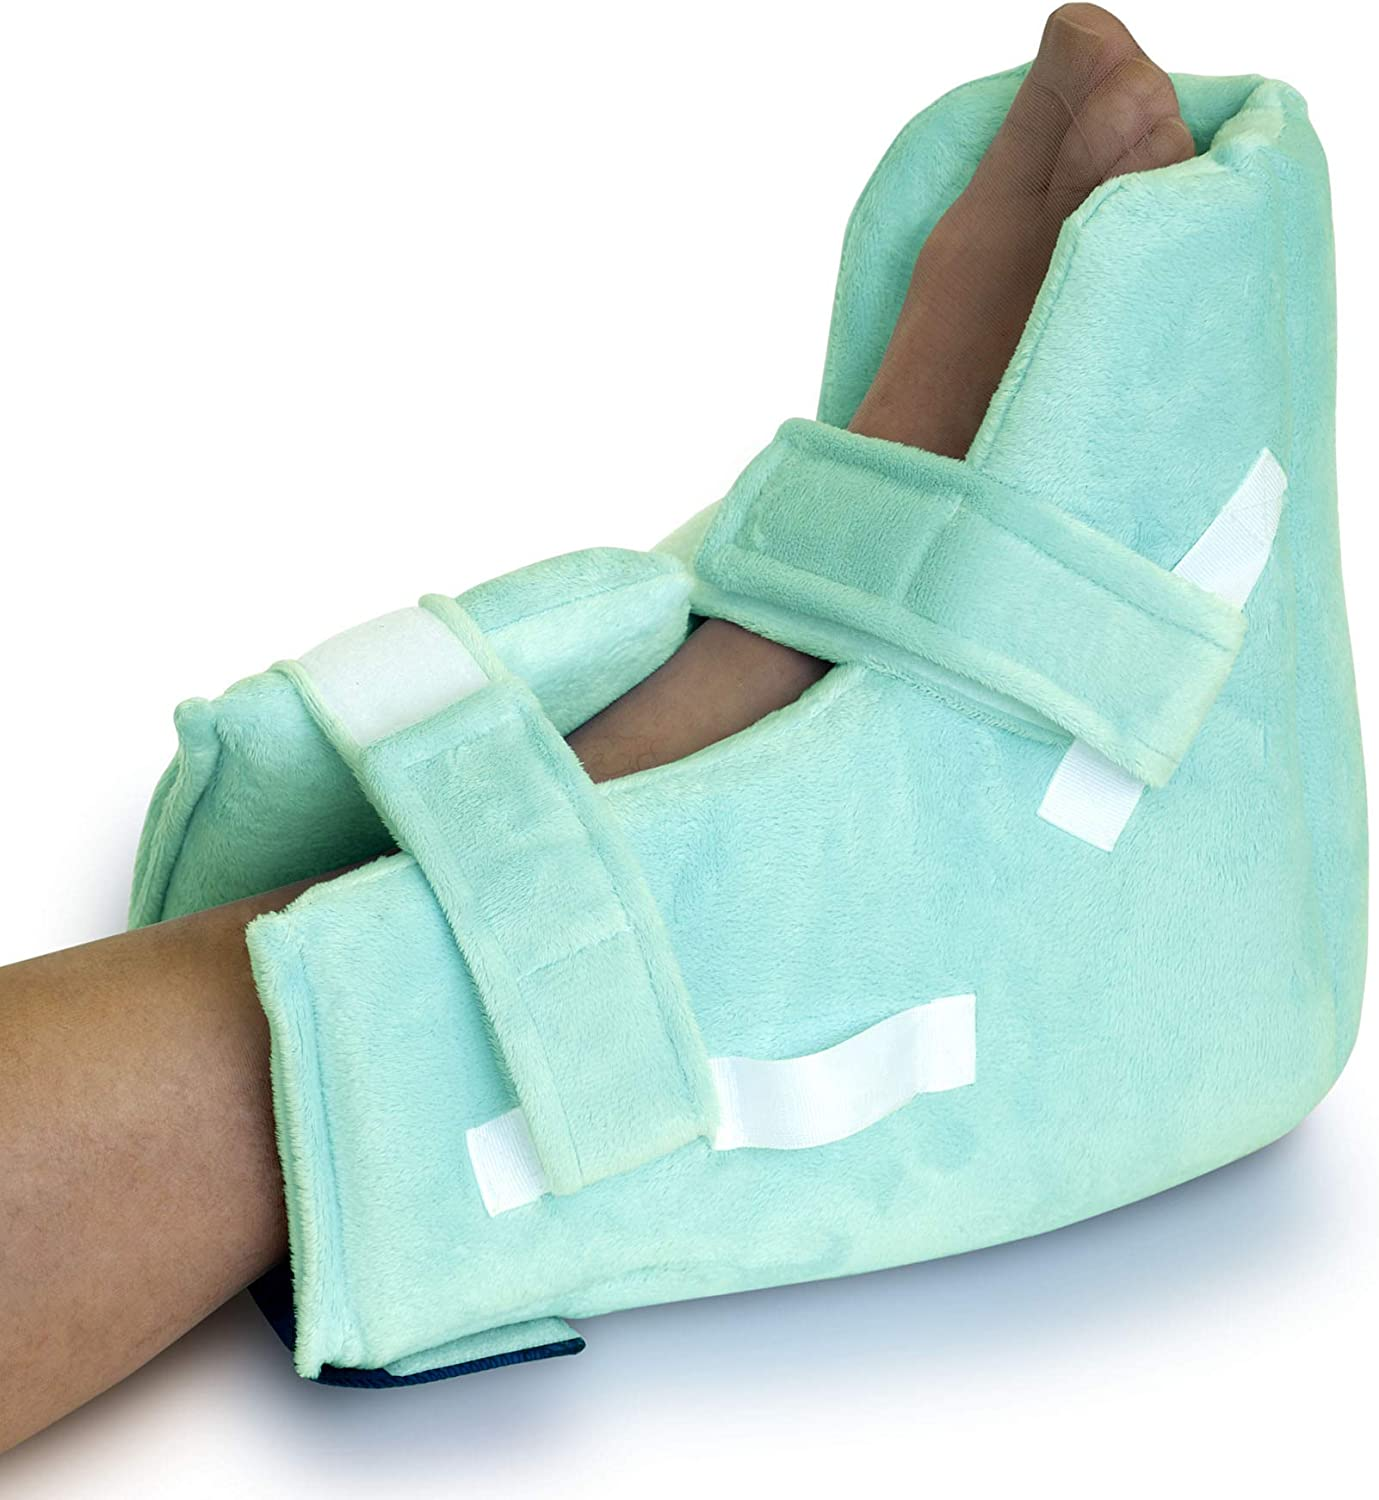 NYOrtho Boot Heel ProtectorCushion -Pressure Relieving Pillow Boot with Suspension Boot Antimicrobial Fabric Zero-G Boot™| Free Removable Heating/Cooling Gel Pack Included| Bariatric